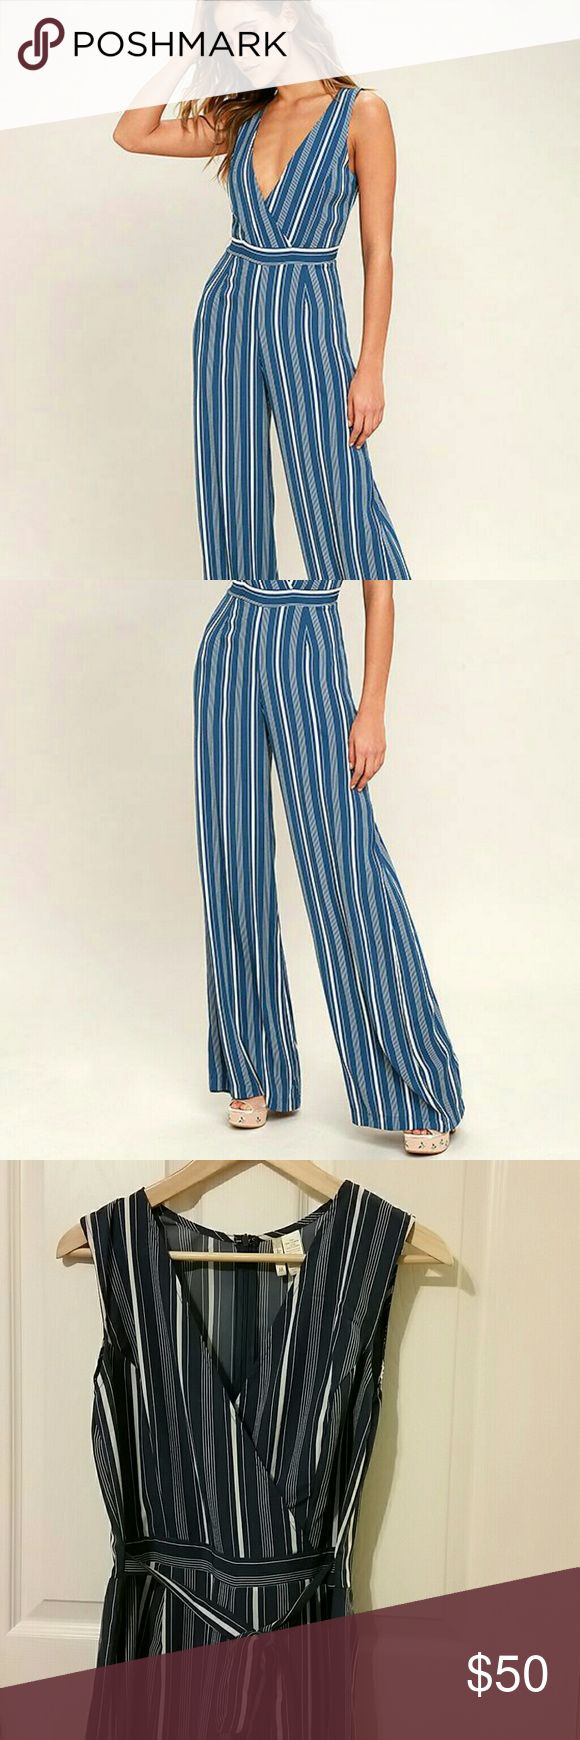 Blue & White Striped Jumpsuit Light and flowy playsuit perfect for your beach vacation. Surplice v neck, wide leg pants with tie waist sash - zipper closure in back. Size medium, new with tags  **not lulu's only listed for exposure, brand is japna Lulu's Pants Jumpsuits & Rompers